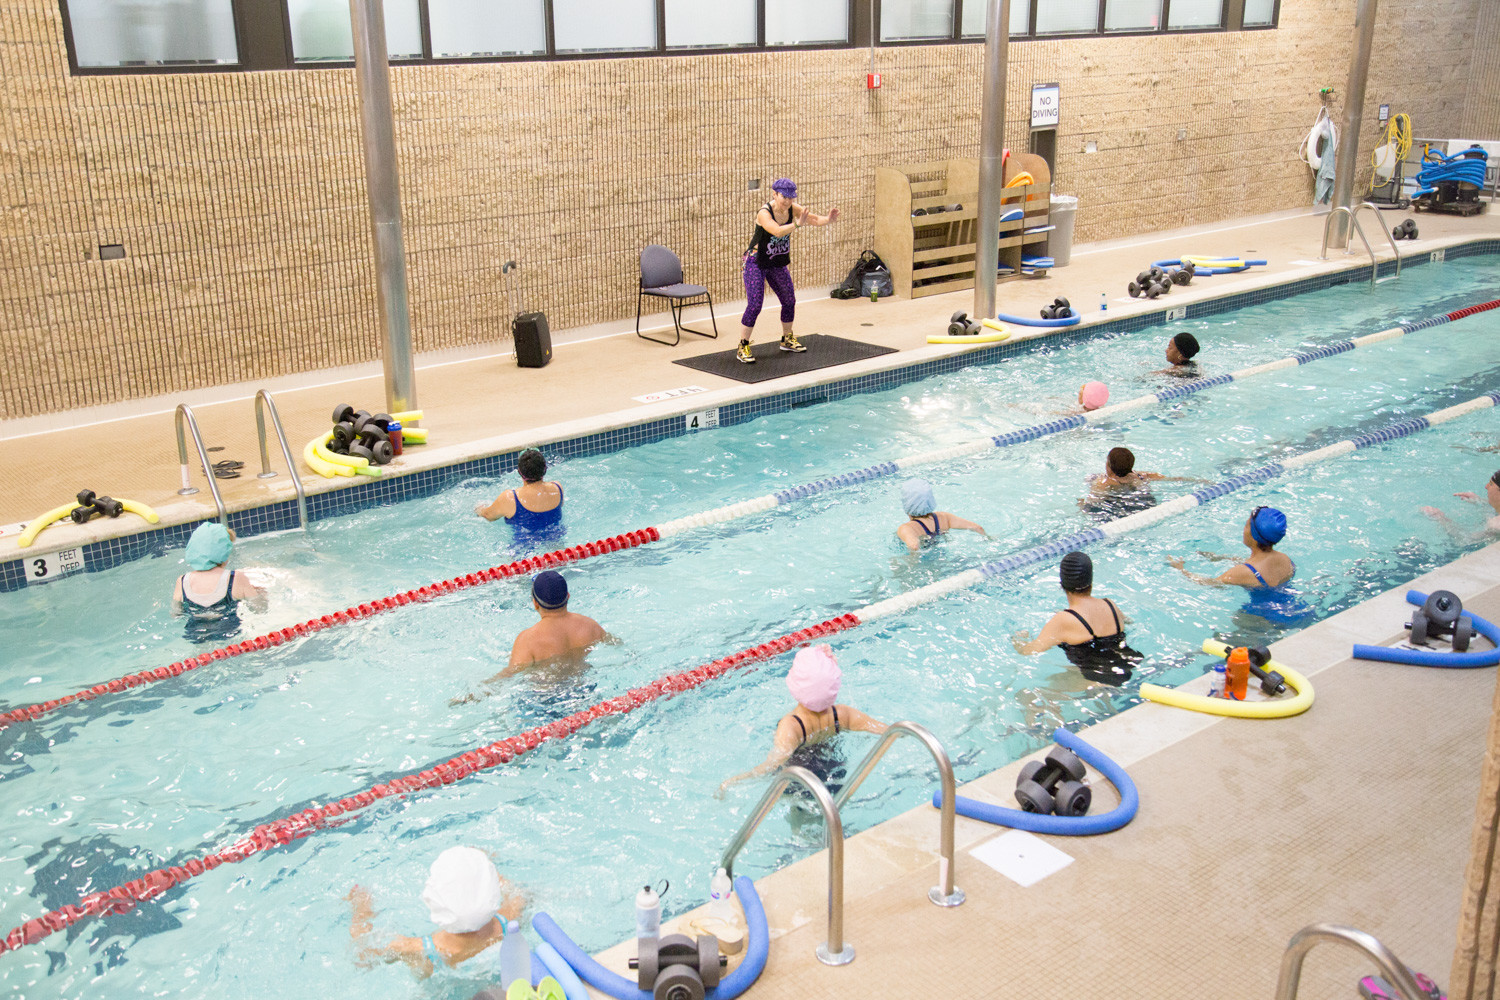 Jacqueline Gikow, an aquatic fitness instructor at 24 Hour Fitness, leads a three-hour class during the annual World Aquathon Day on Nov. 11. The event is celebrated in 79 other countries to promote aquatic fitness.